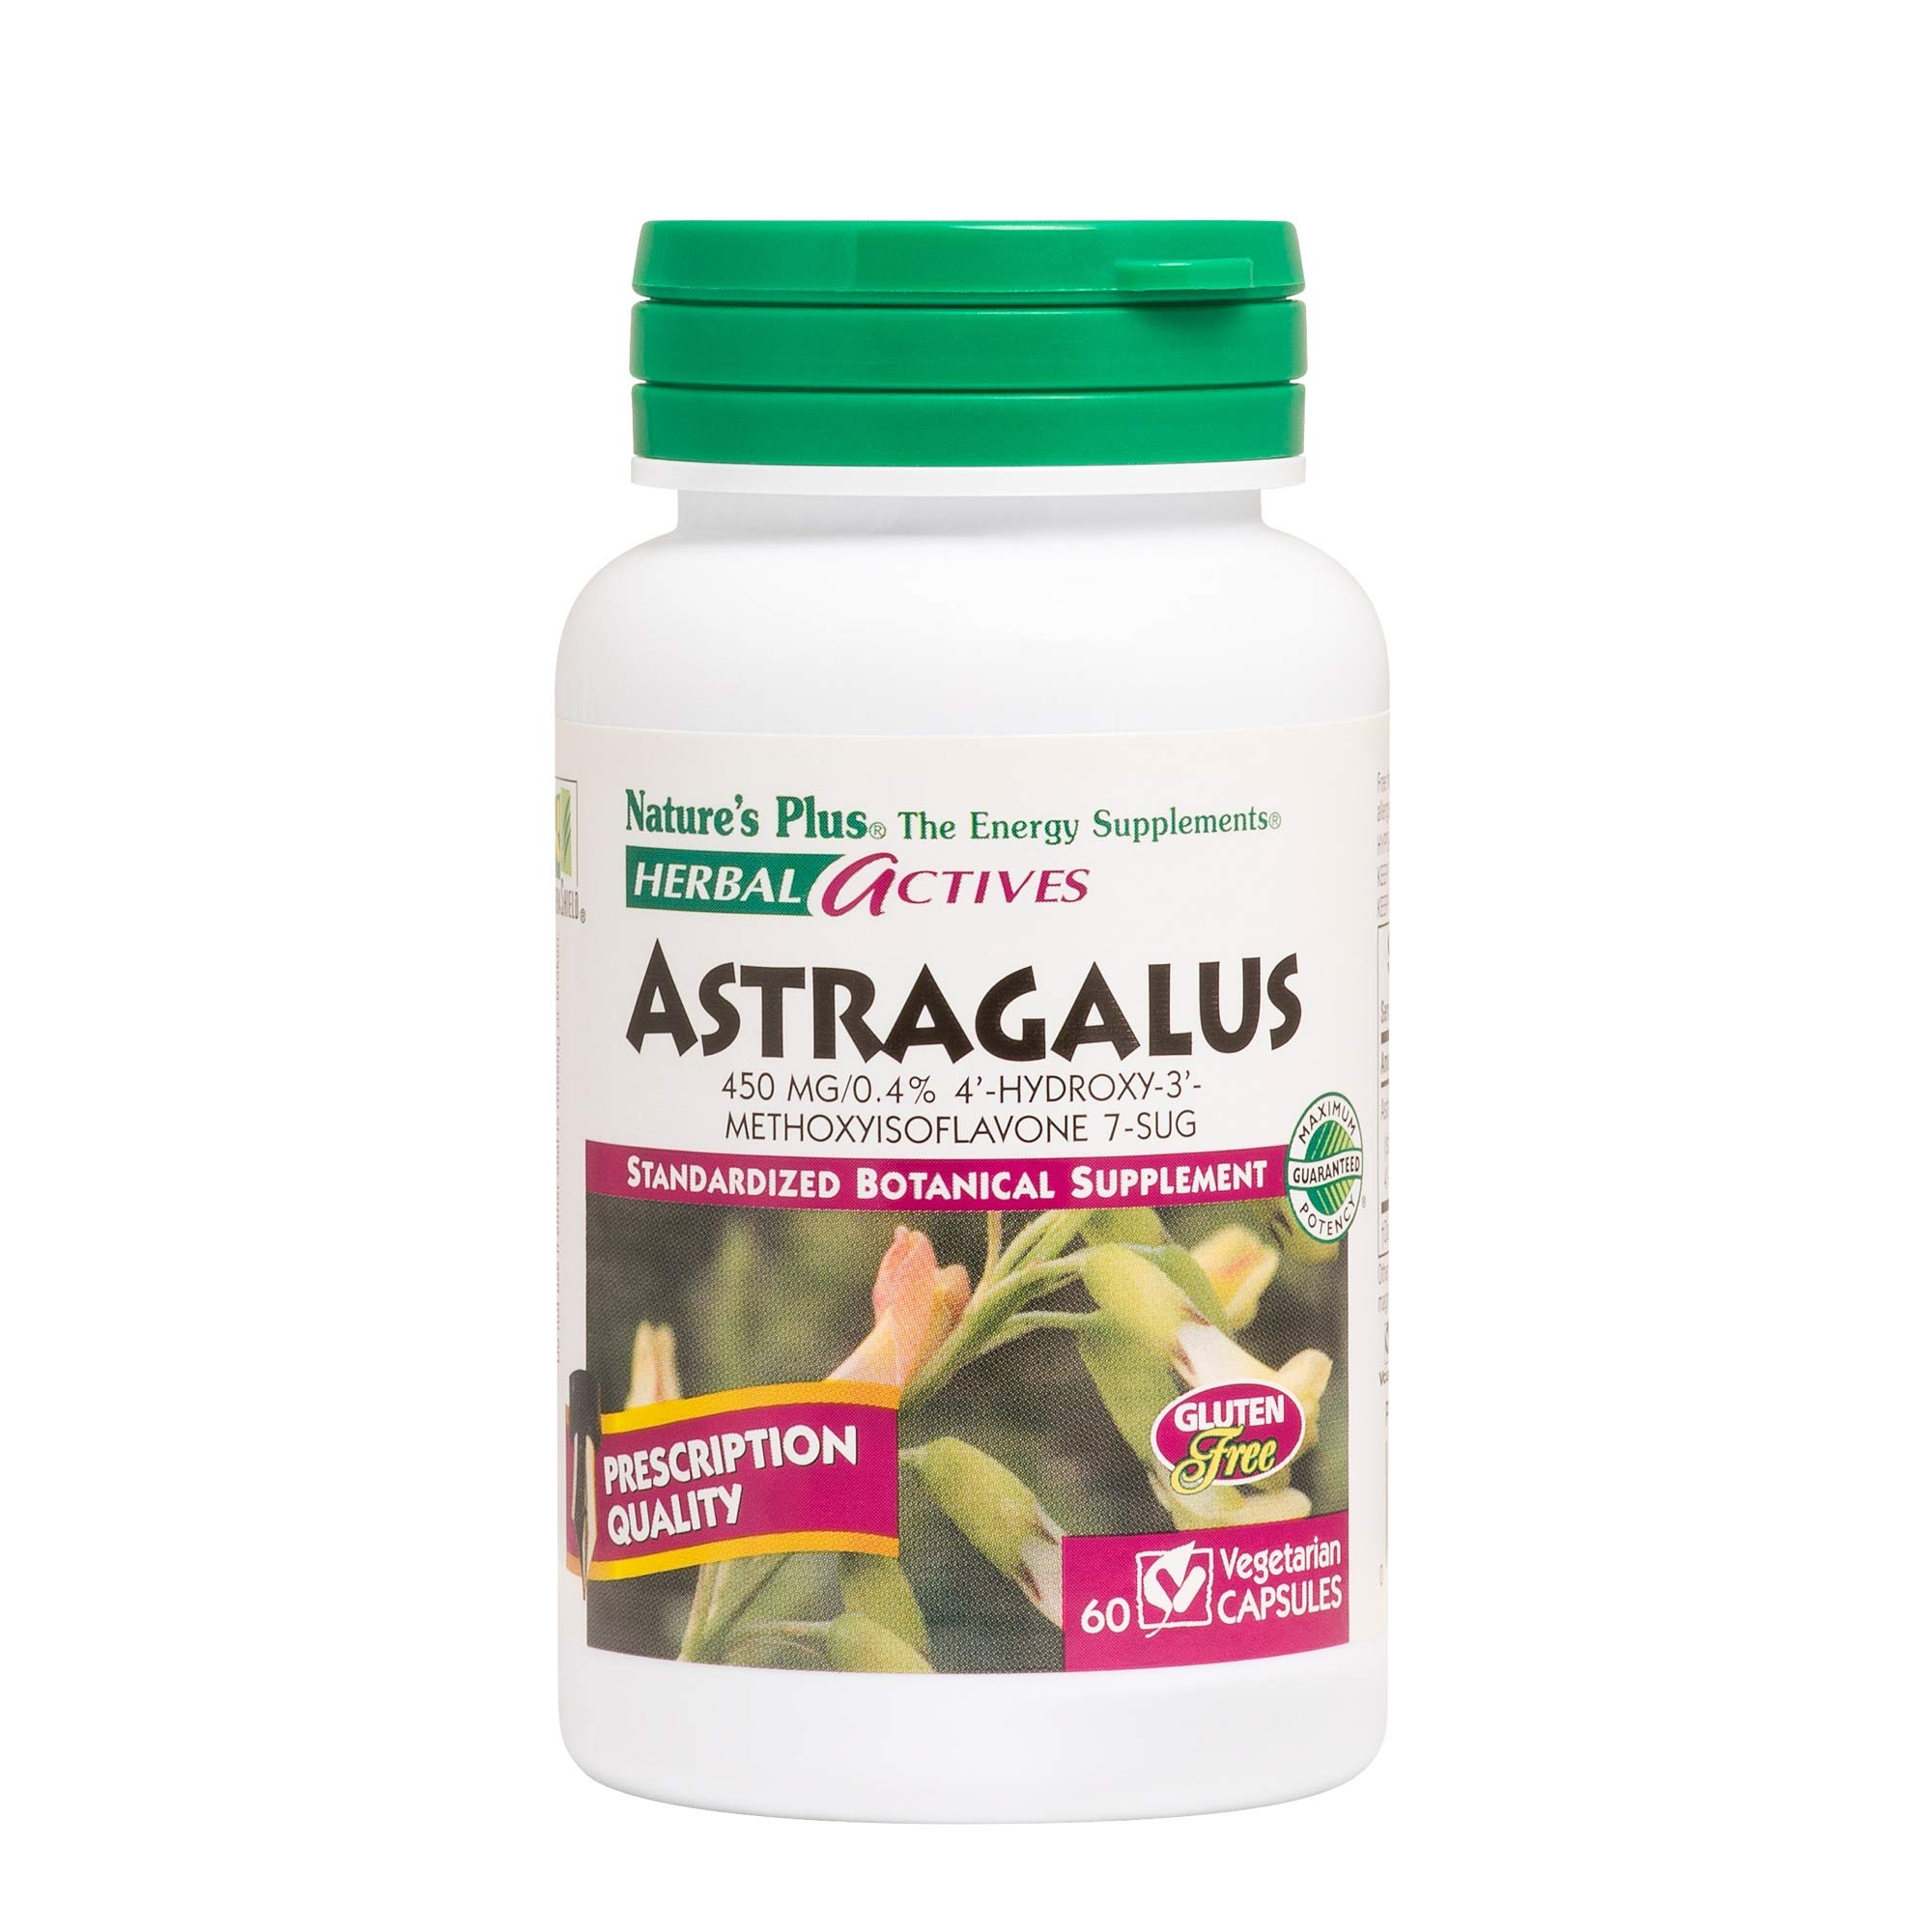 Natures Plus Herbal Actives Astragalus - 450 mg, 60 Vegan Capsules - Standardized Herbal Supplement, Supports Heart & Immune Health - Vegetarian, Gluten Free - 60 Servings